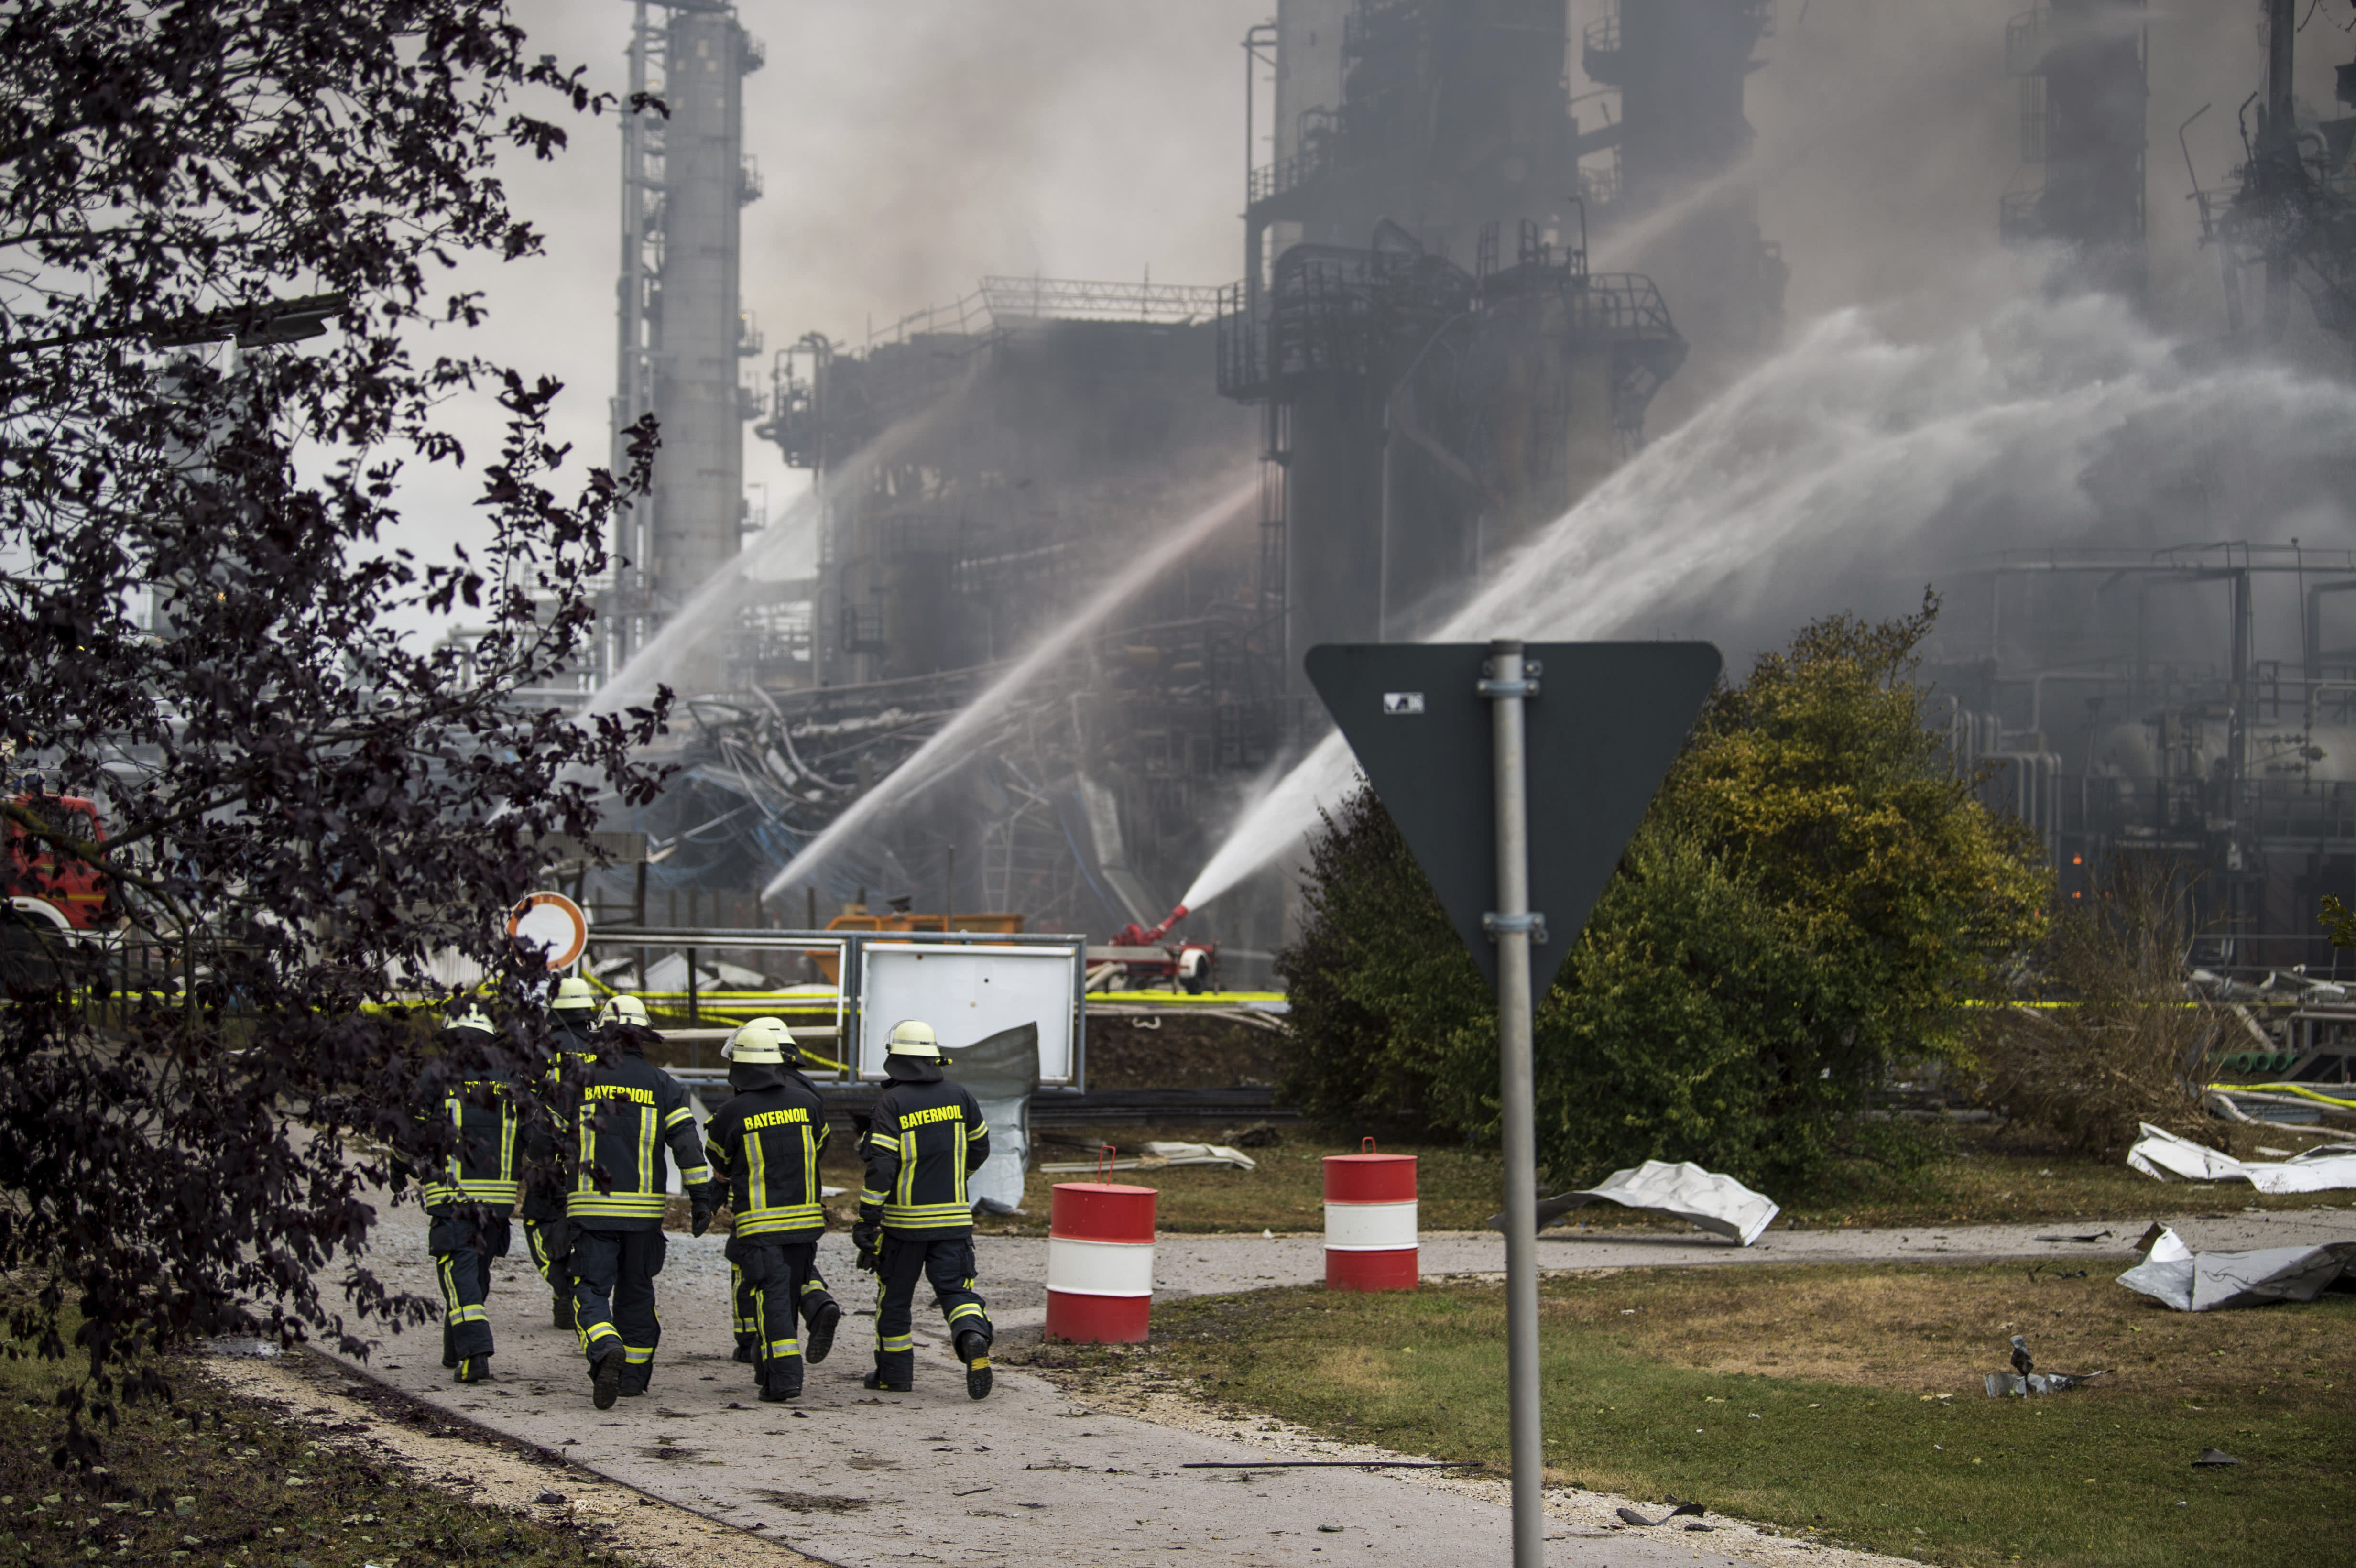 Firefighters walk over the area of a Bayernoil refinery in Vohburg an der Donau near Ingolstadt, southern Germany, Saturday, Sept. 1, 2018 after a fire broke out. (Lino Mirgeler/dpa via AP)